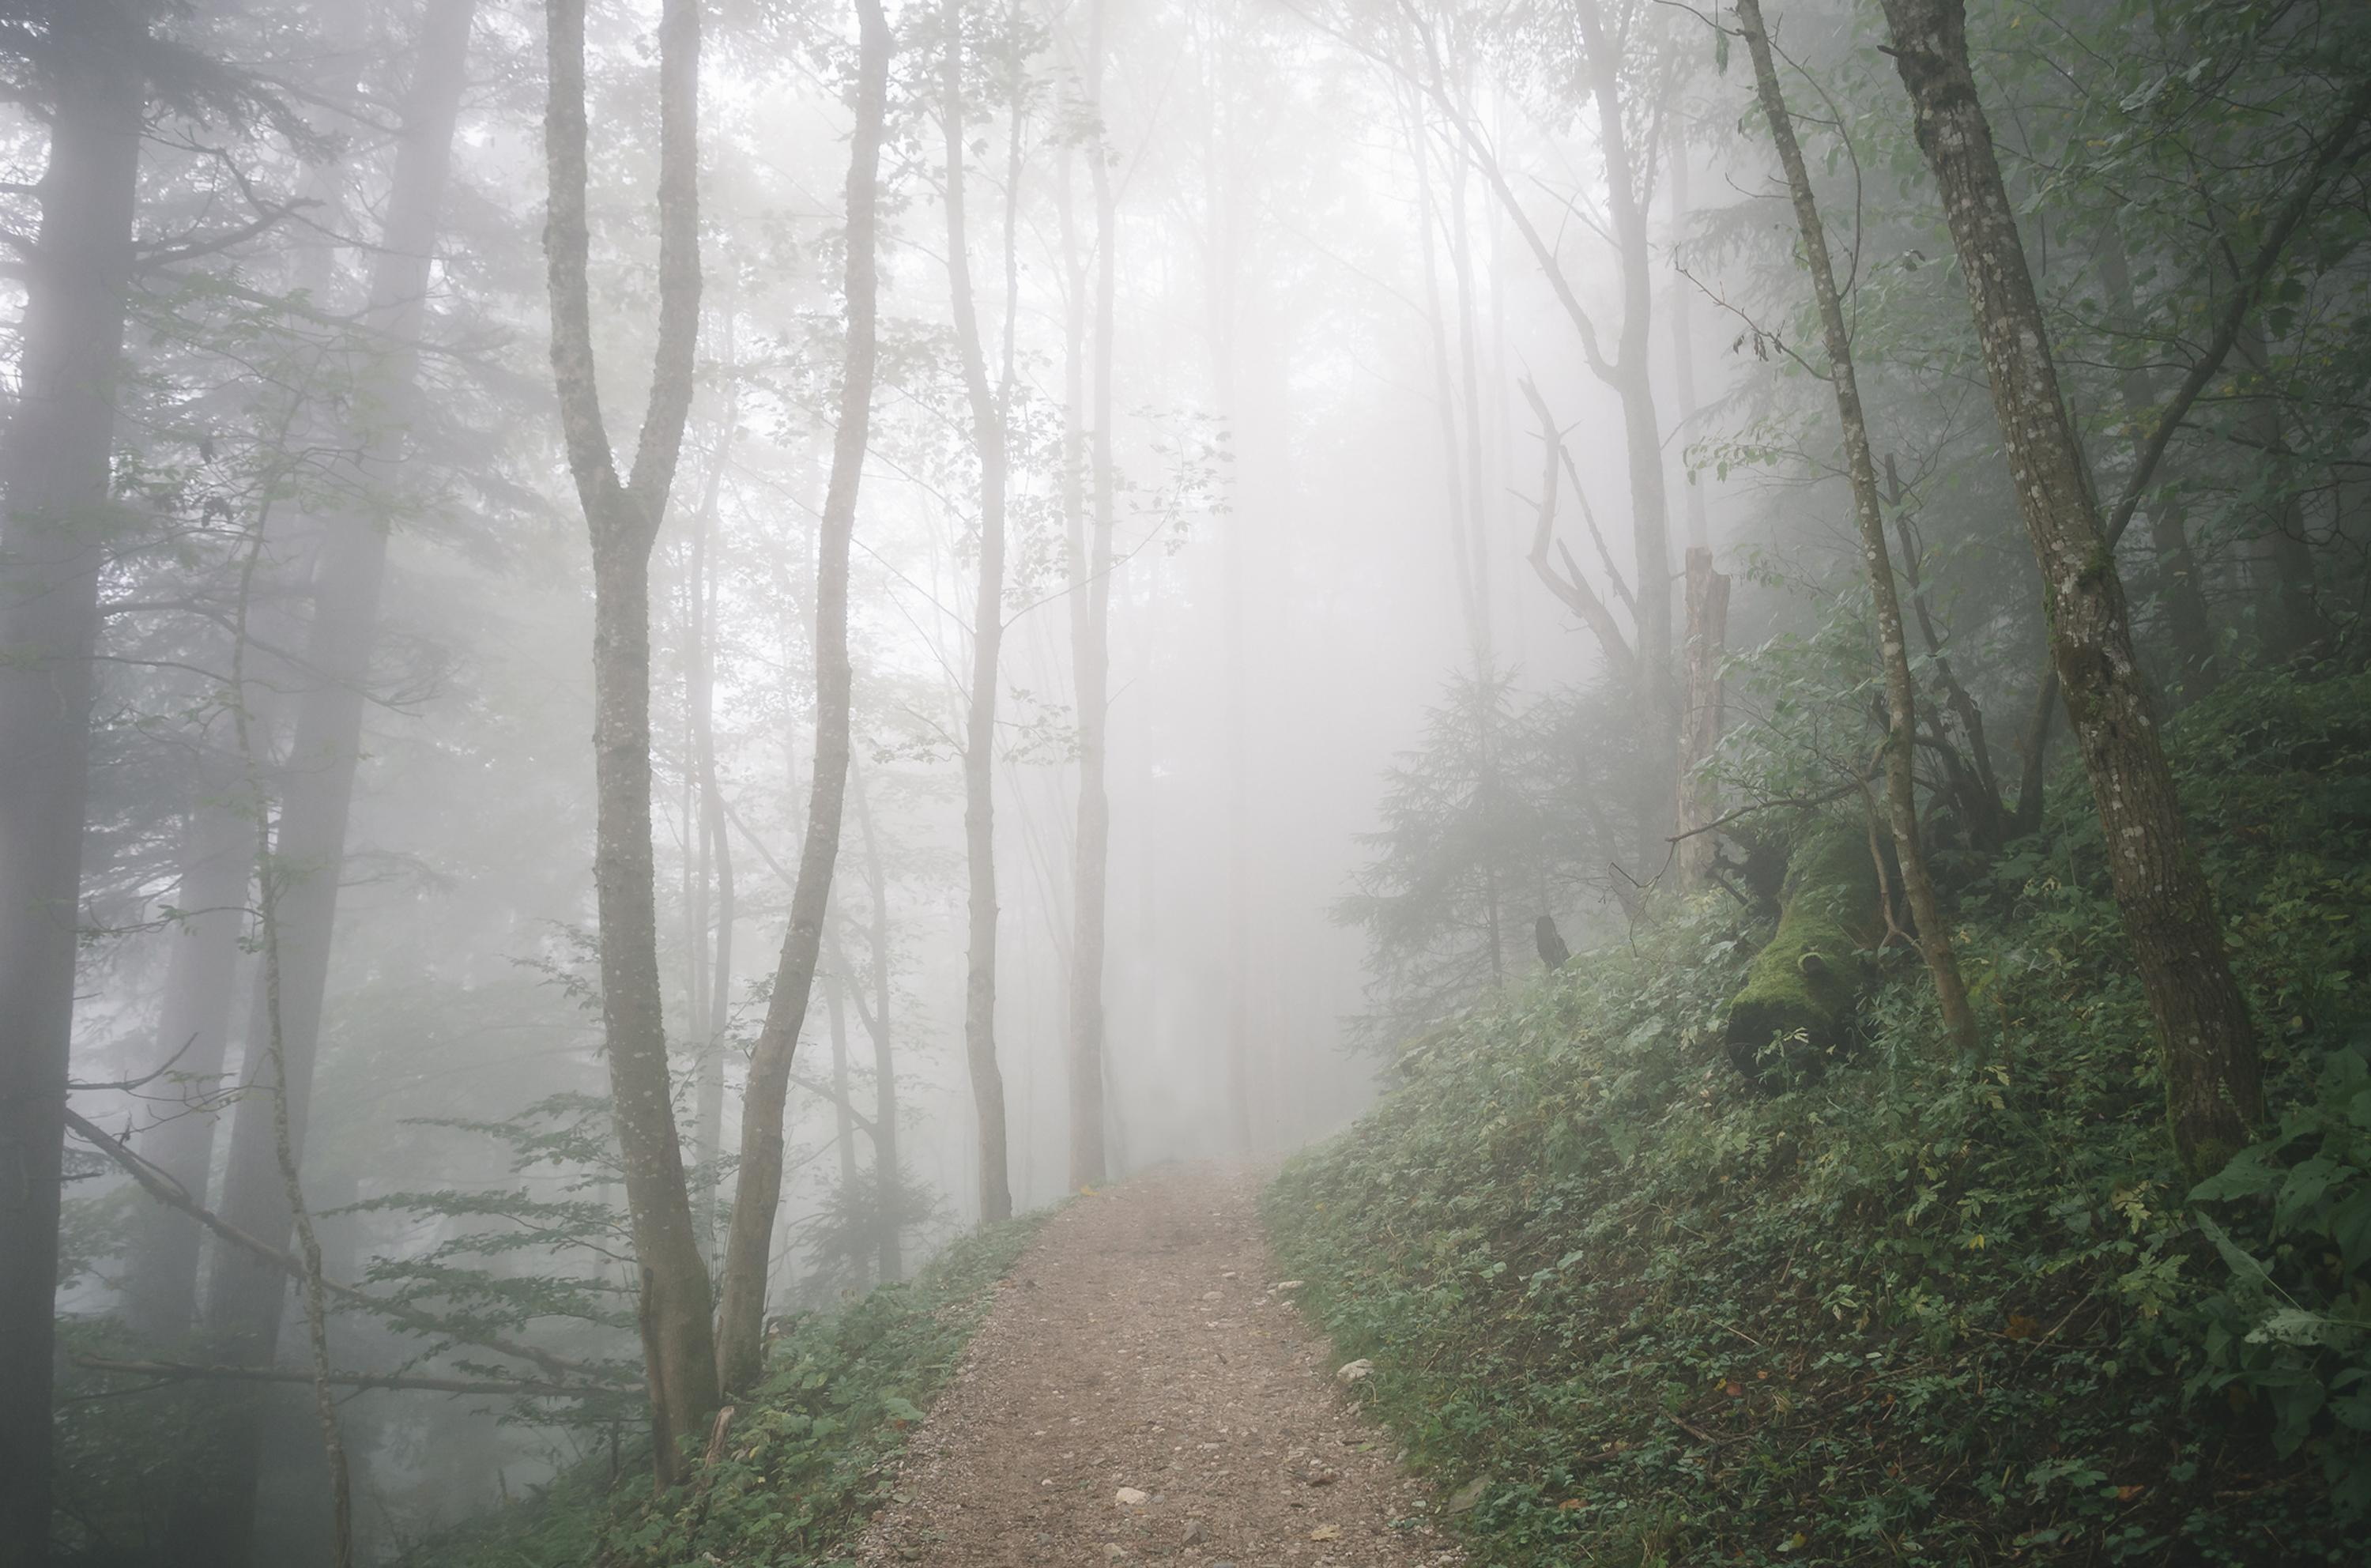 Straight-on shot of a foggy trail in a forest full of trees and green shrubbery.